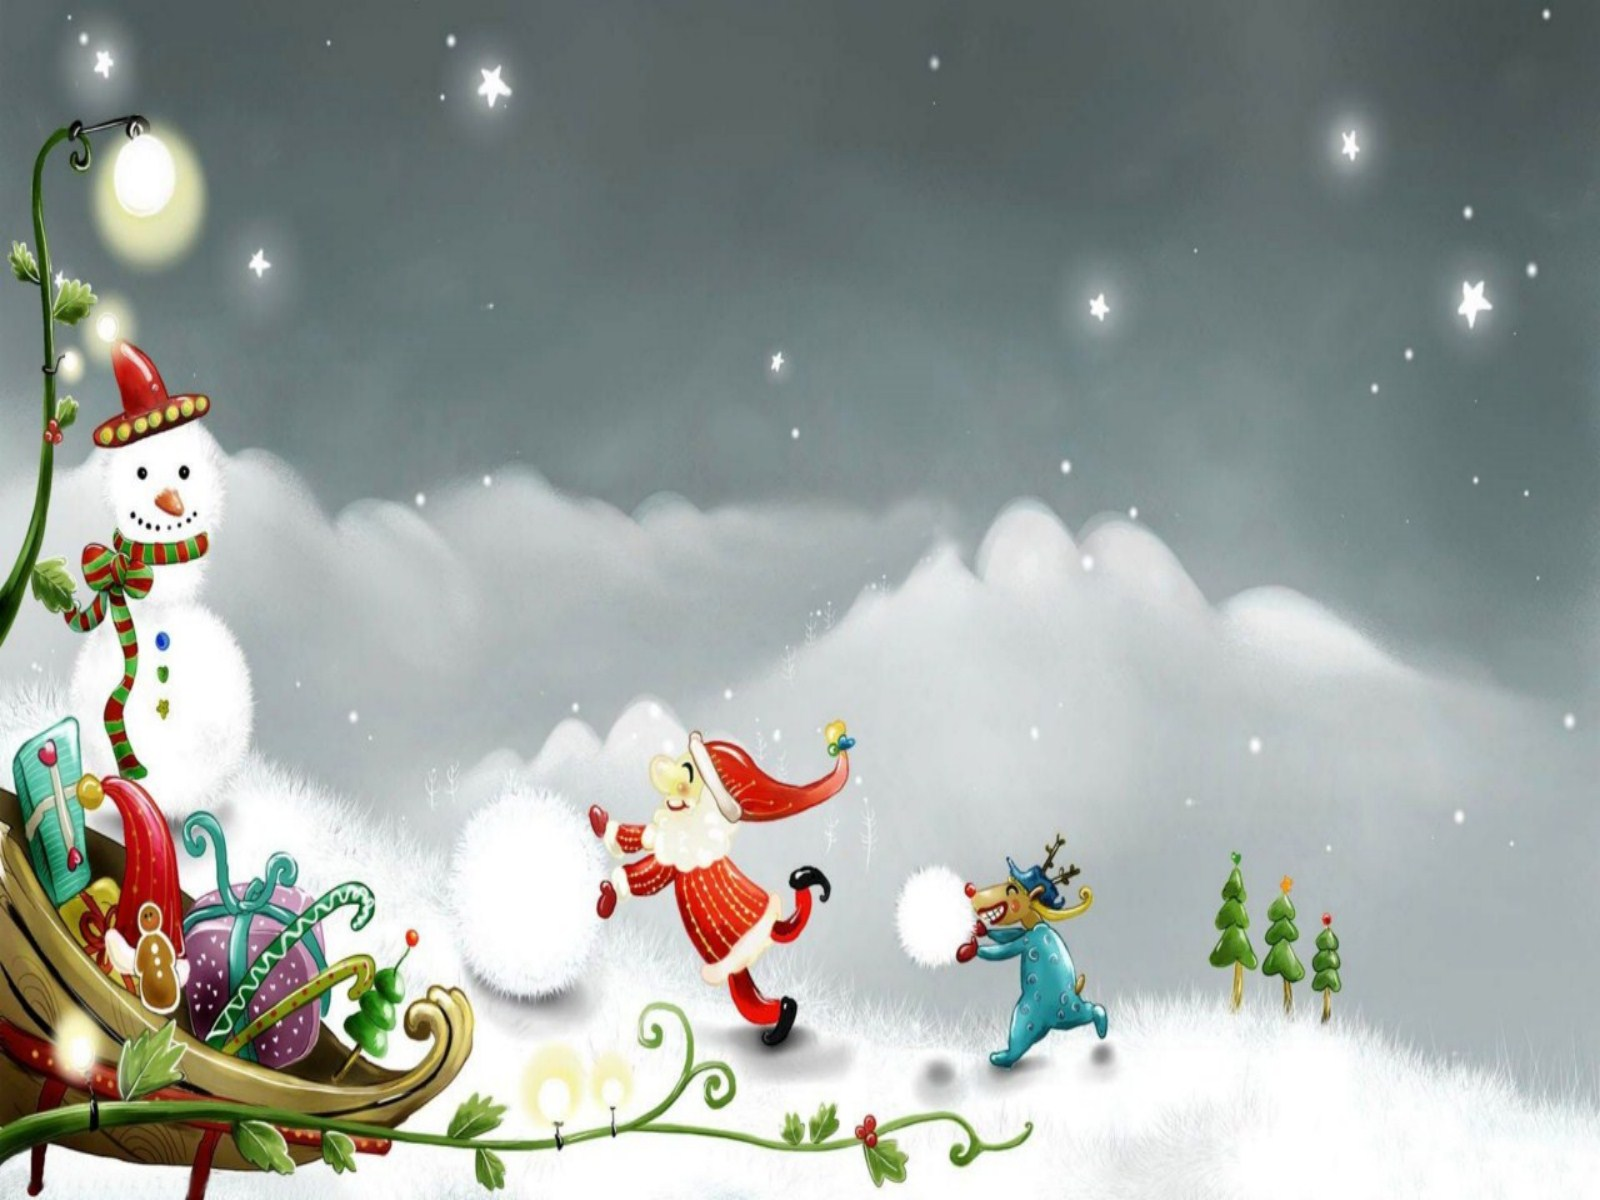 Christmas Background Wallpapers WIN10 THEMES 1600x1200